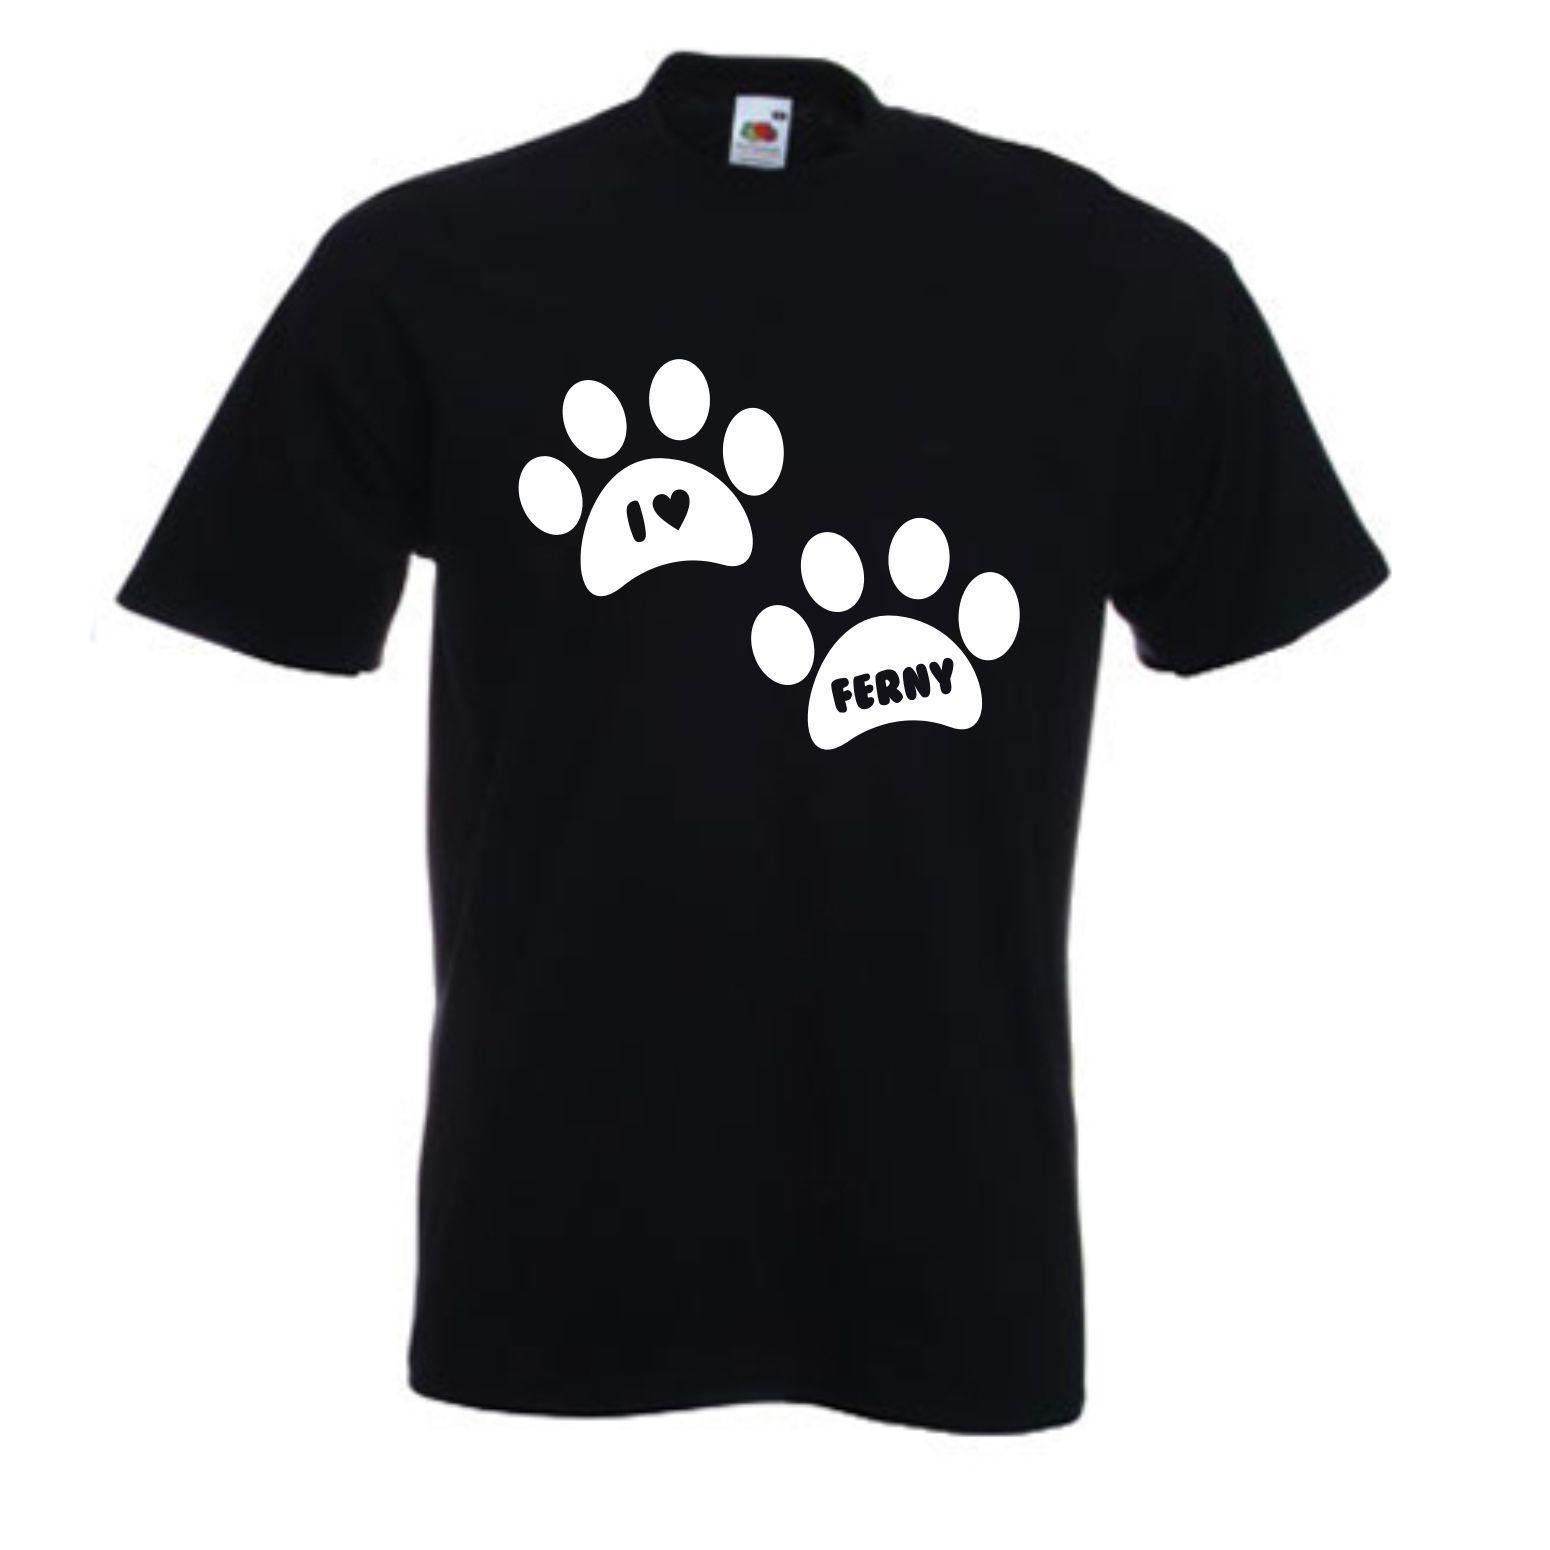 5f5fb8d3a I HEART DOG PAW 2 PERSONALISED T SHIRT SIZES S XXL Style Round Style Tshirt  Tees Custom Jersey T Shirt Graphic T Shirt Design Own T Shirt From  Happyalltee